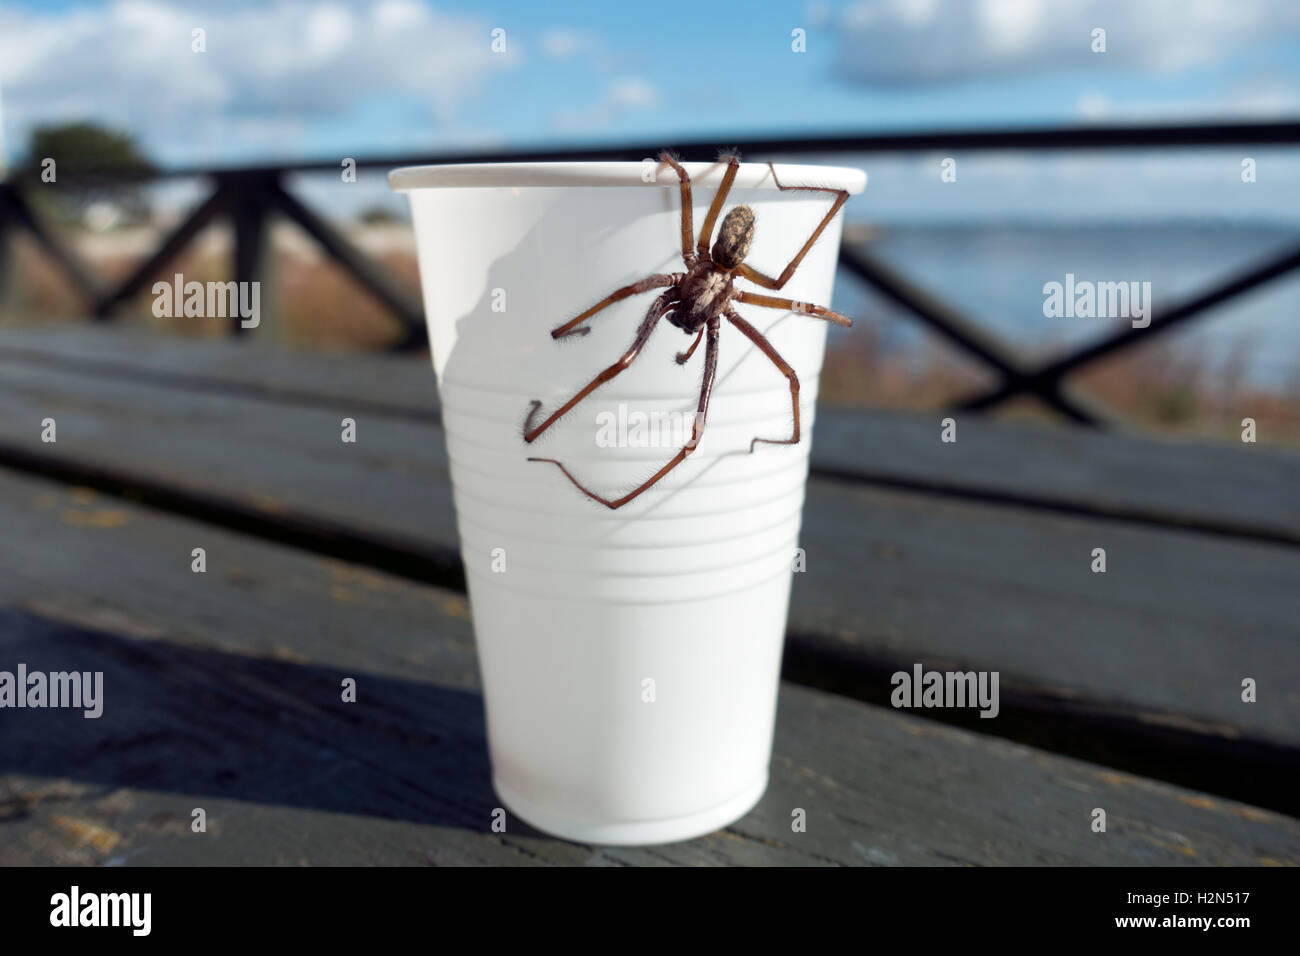 A giant house spider, Eratigena atrica, warming in the sun on a paper cup. What a Coffee Mate. Keeps your house - Stock Image